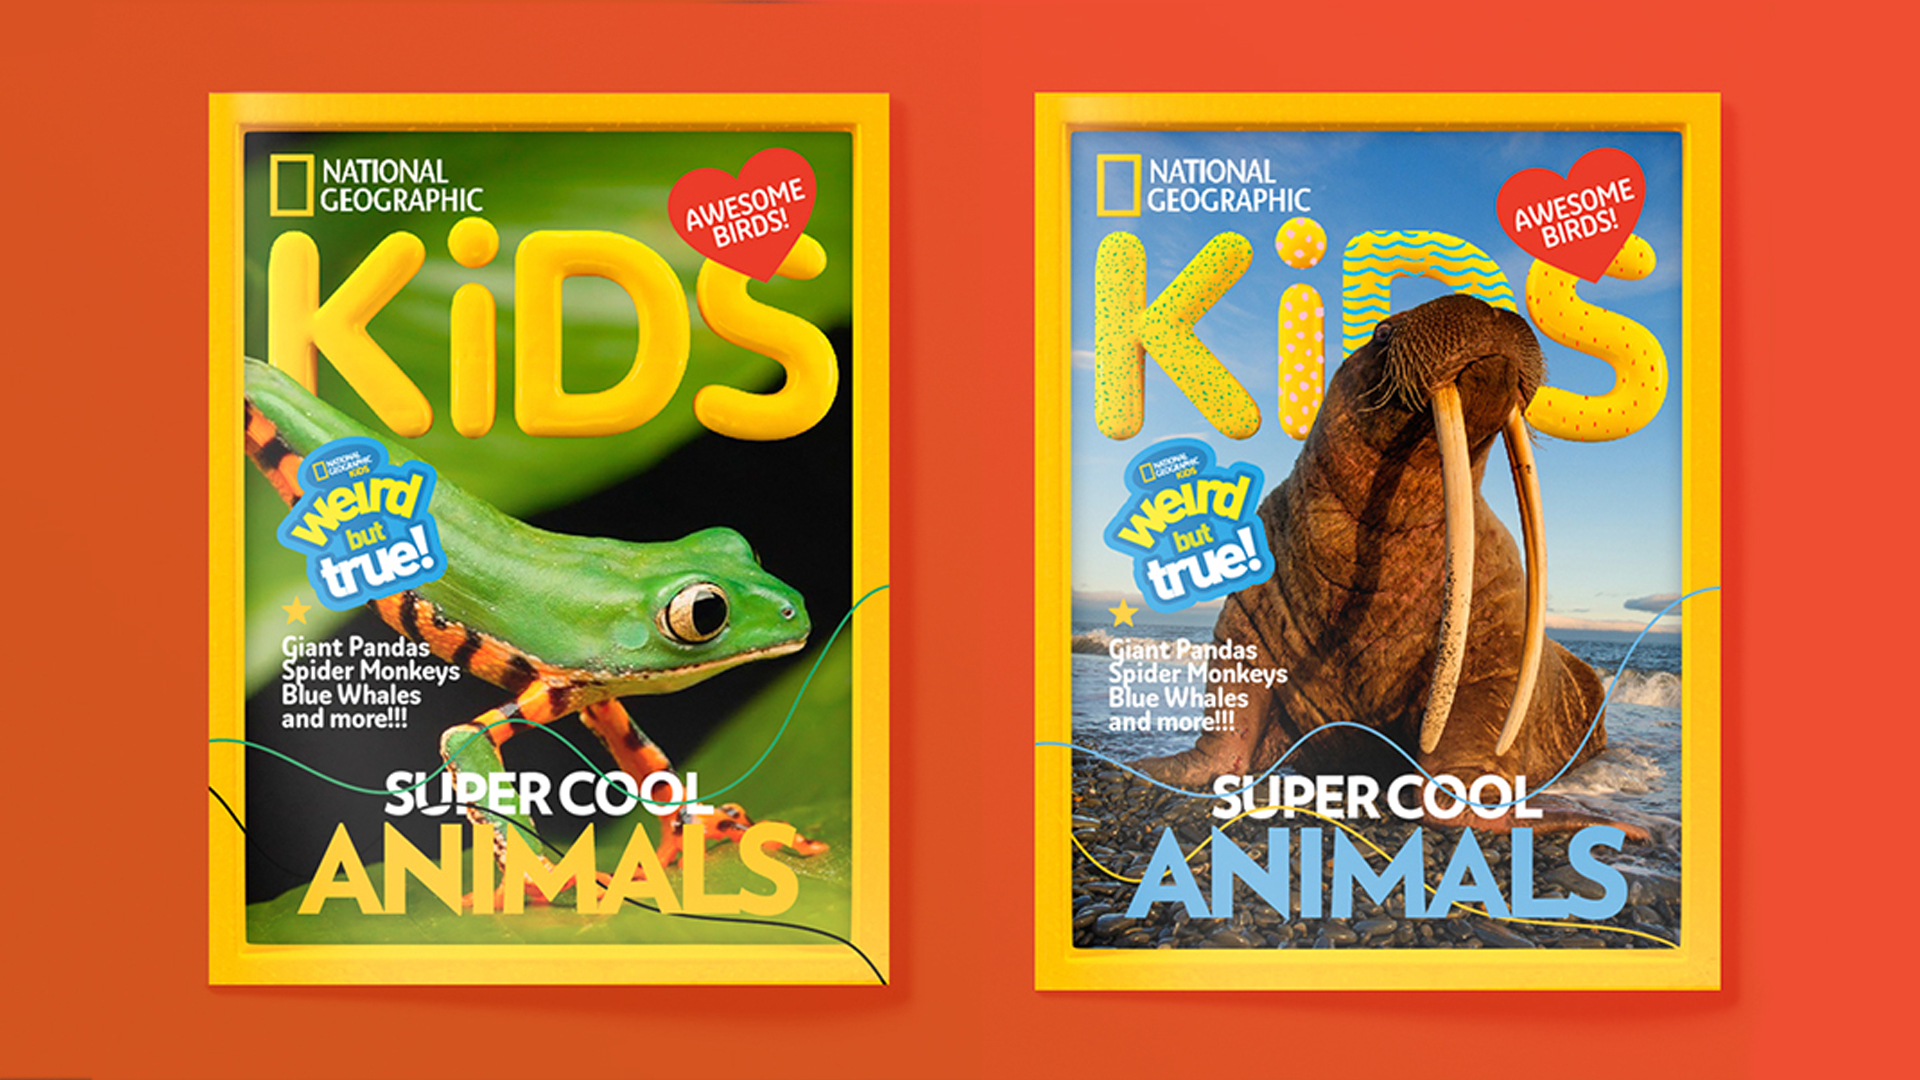 Build a brand for National Geographic Kids